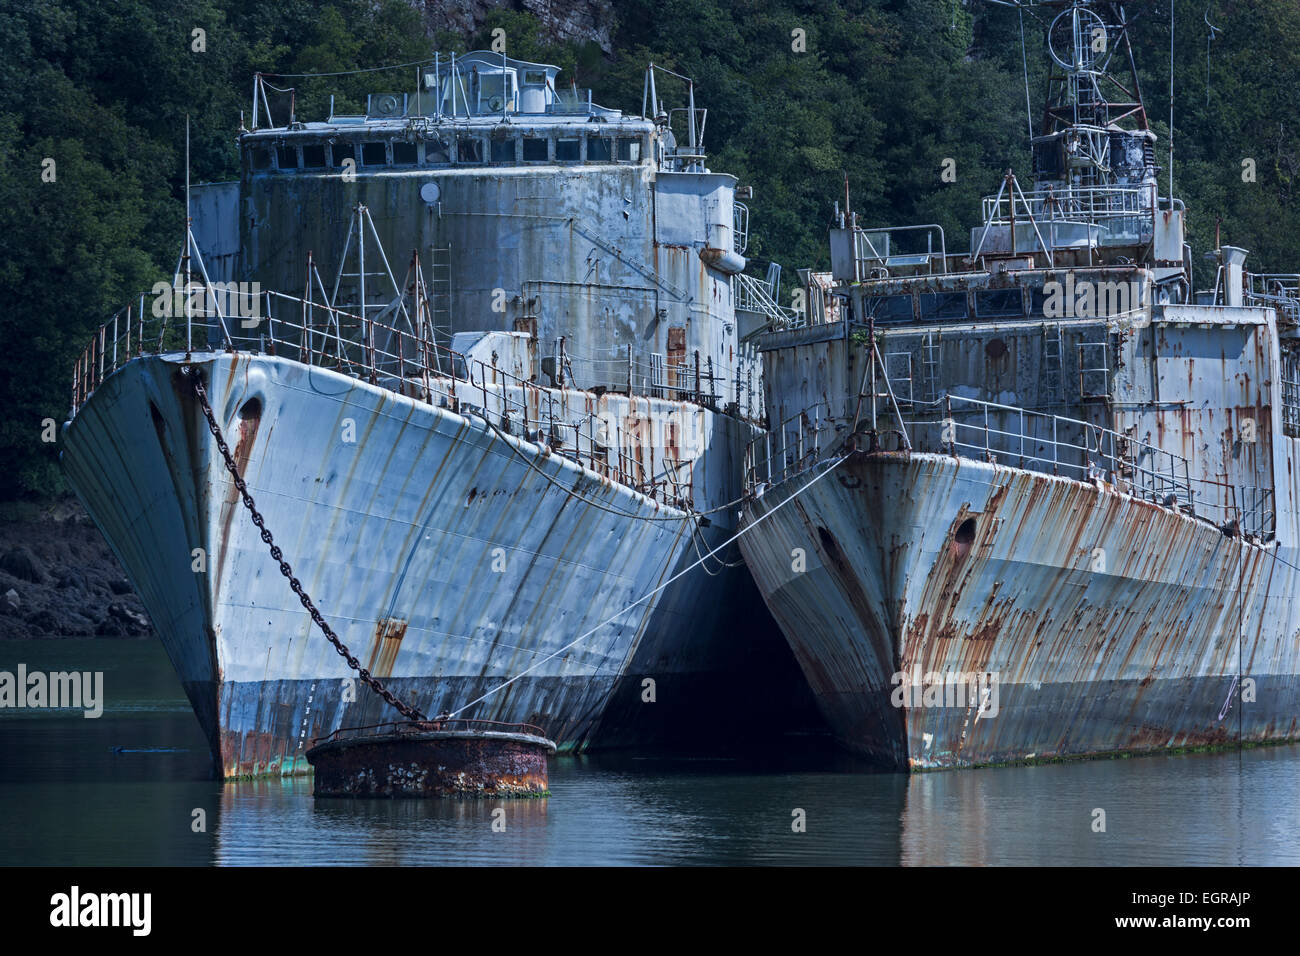 Ship graveyard of military ships, Brittany, France, Europe - Stock Image